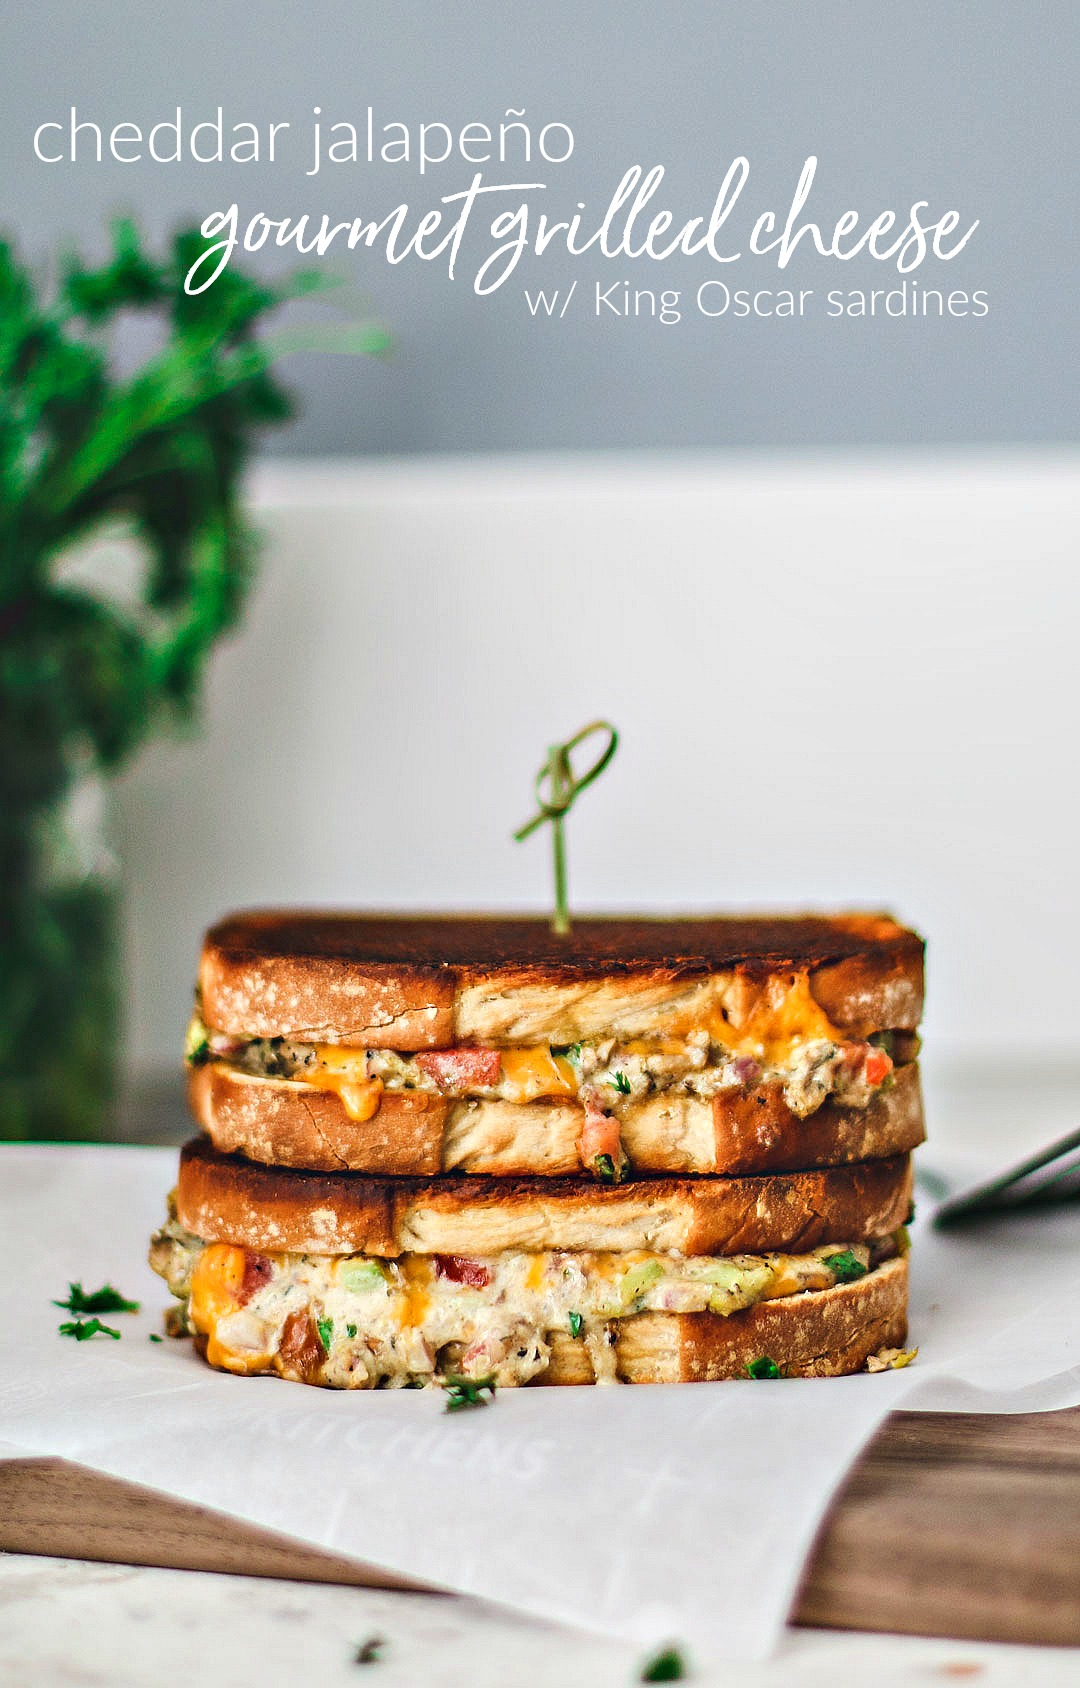 Cheddar Jalapeño Gourmet Grilled Cheese with King Oscar Sardines